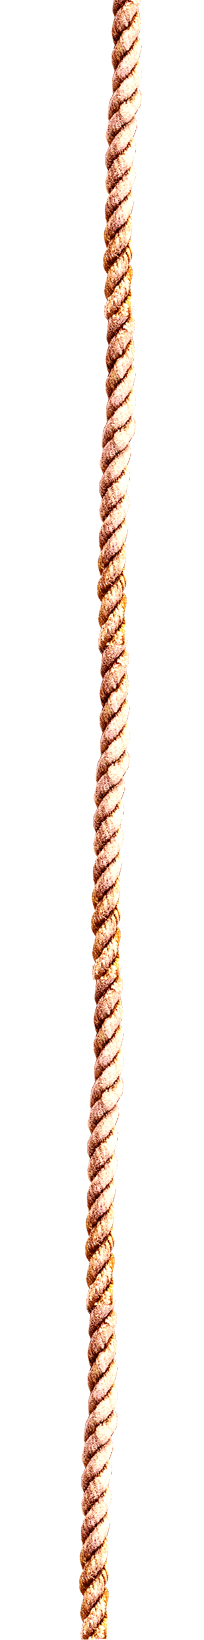 Rope HD PNG - 119046